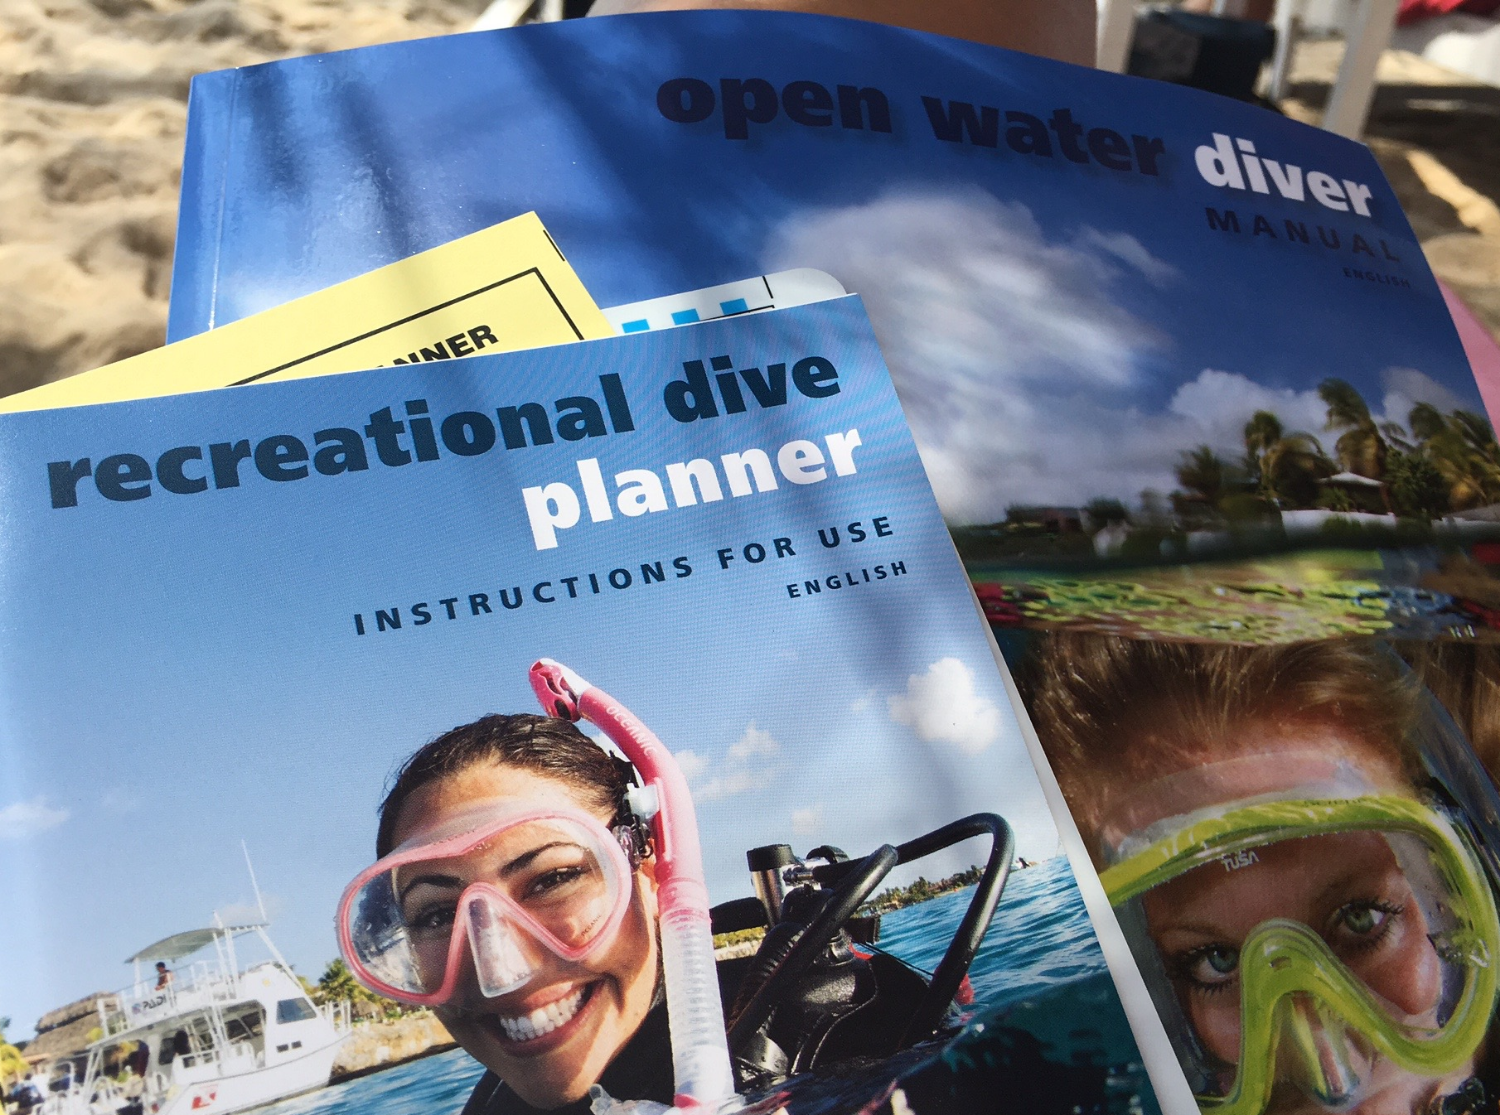 Taking on a new challenge of getting certified as an Open Water Diver